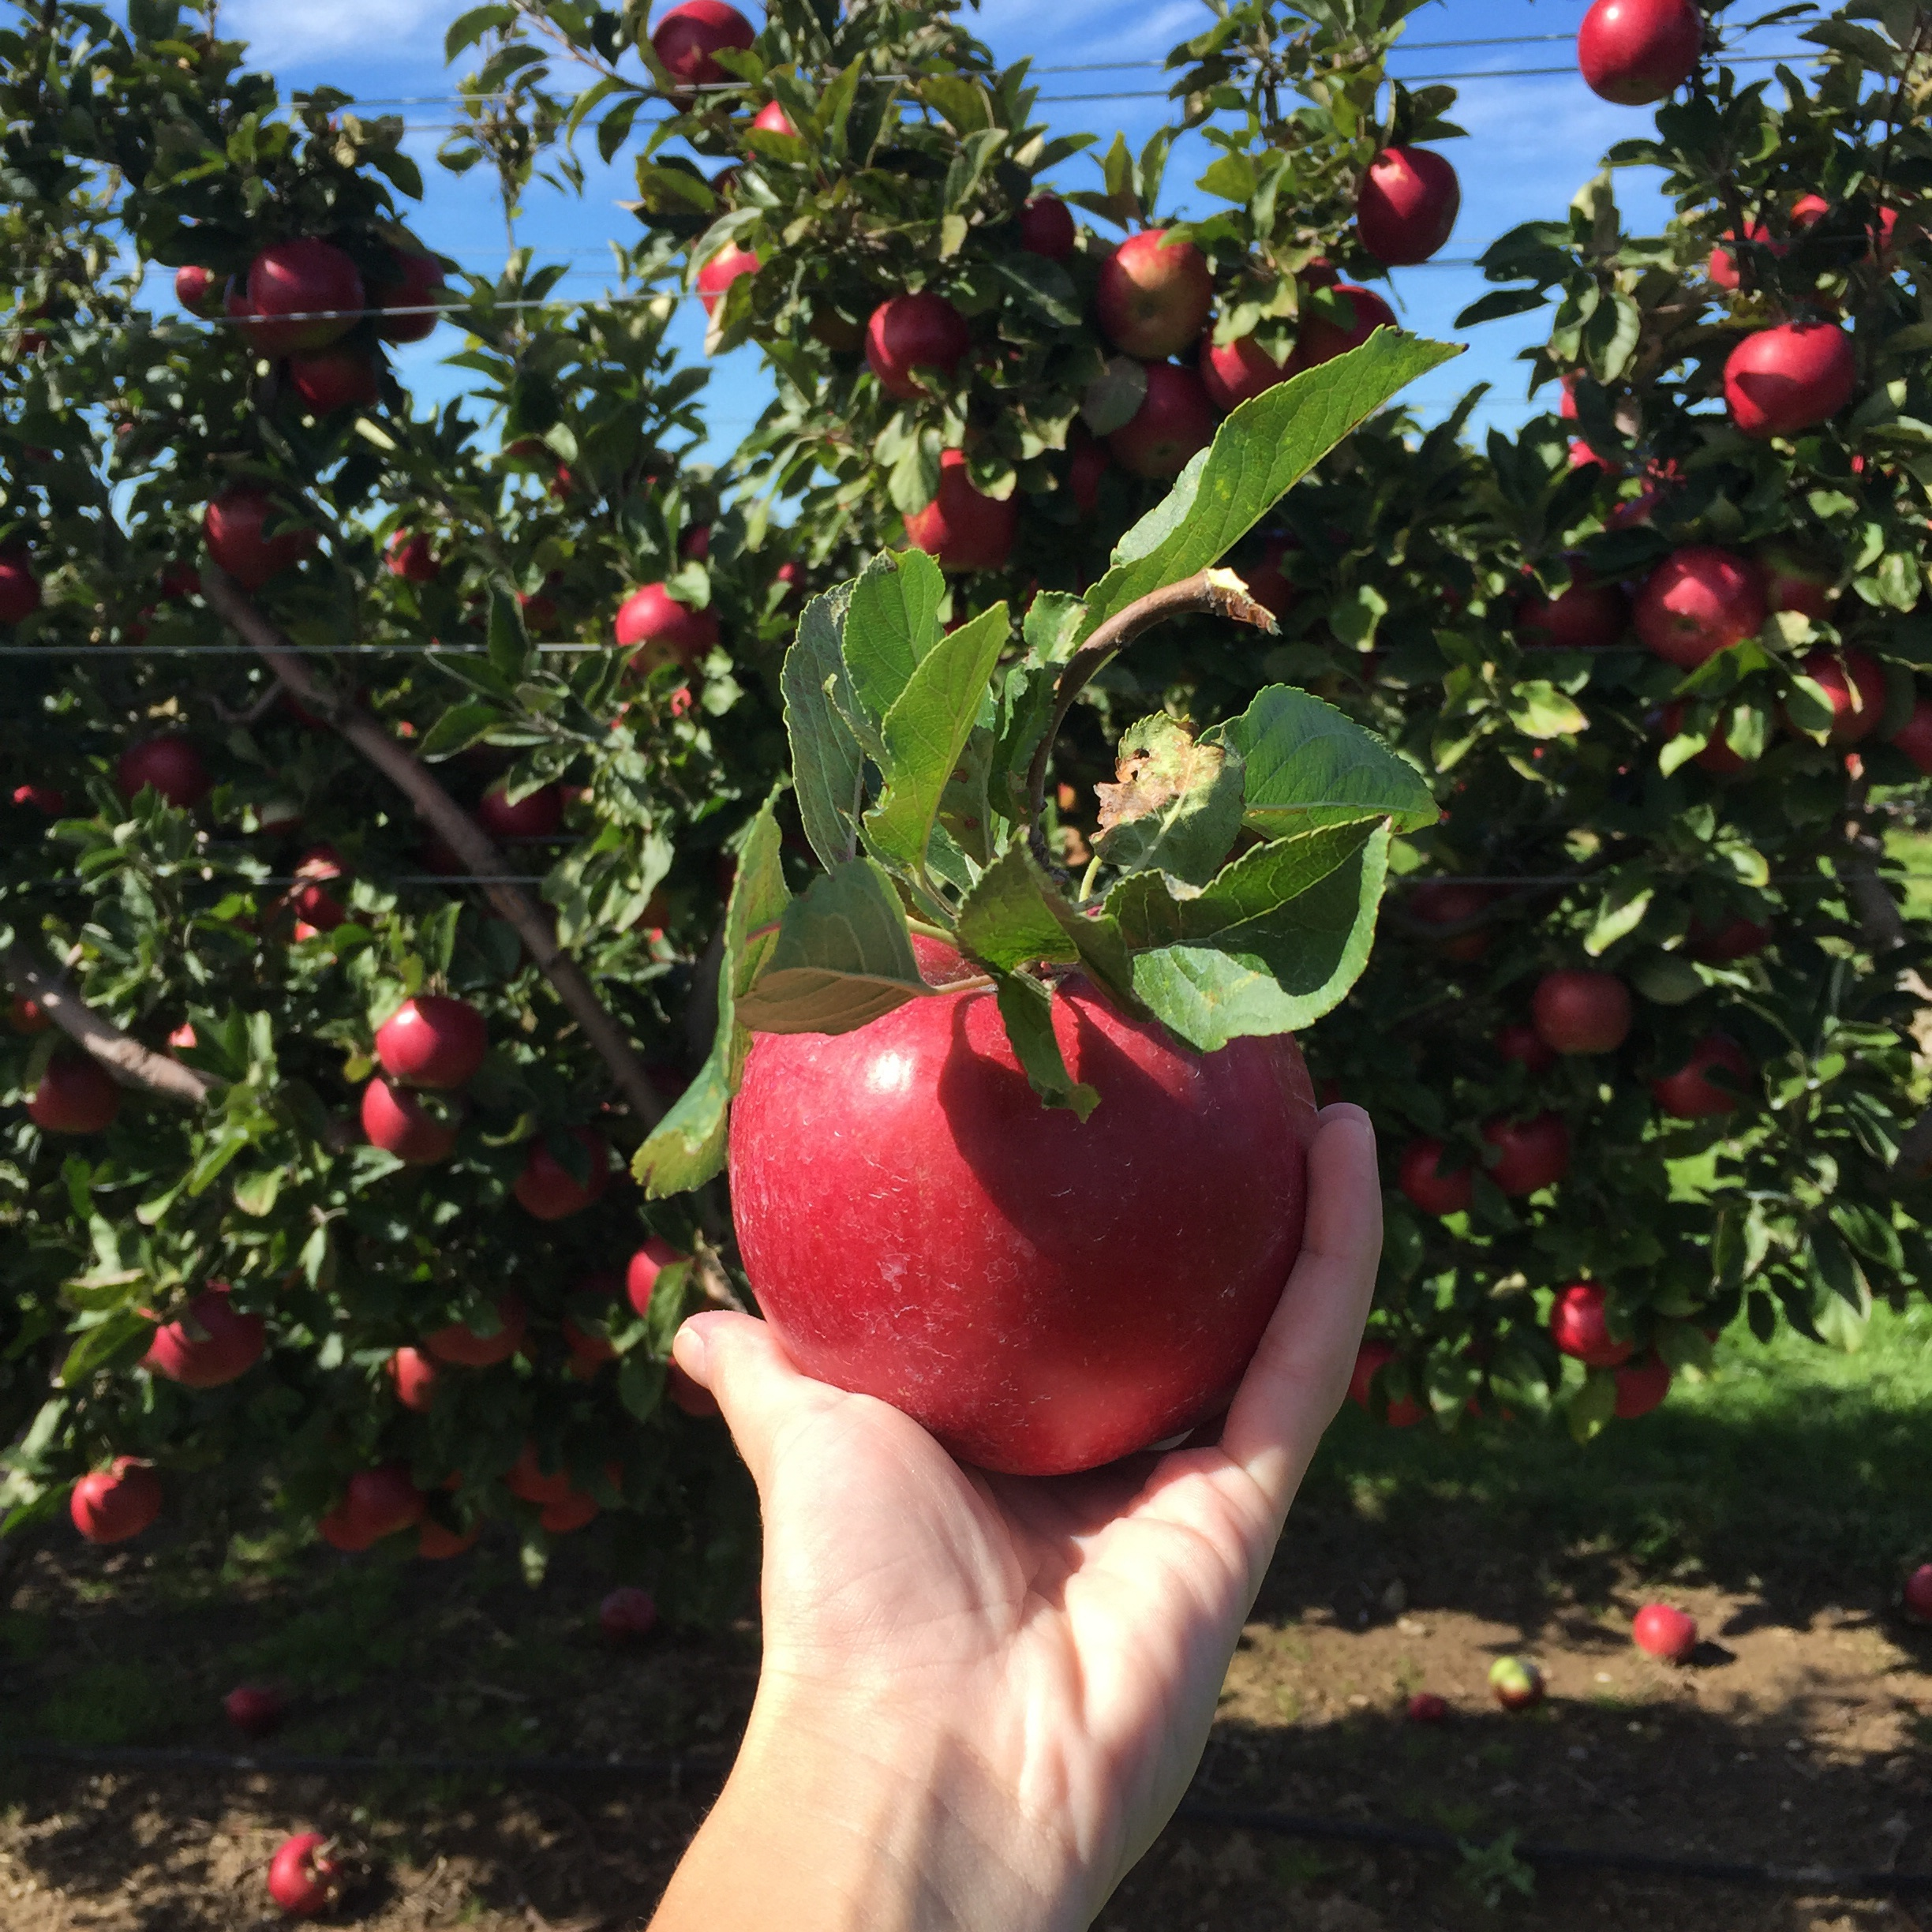 Apple Picking at the Milk Pail